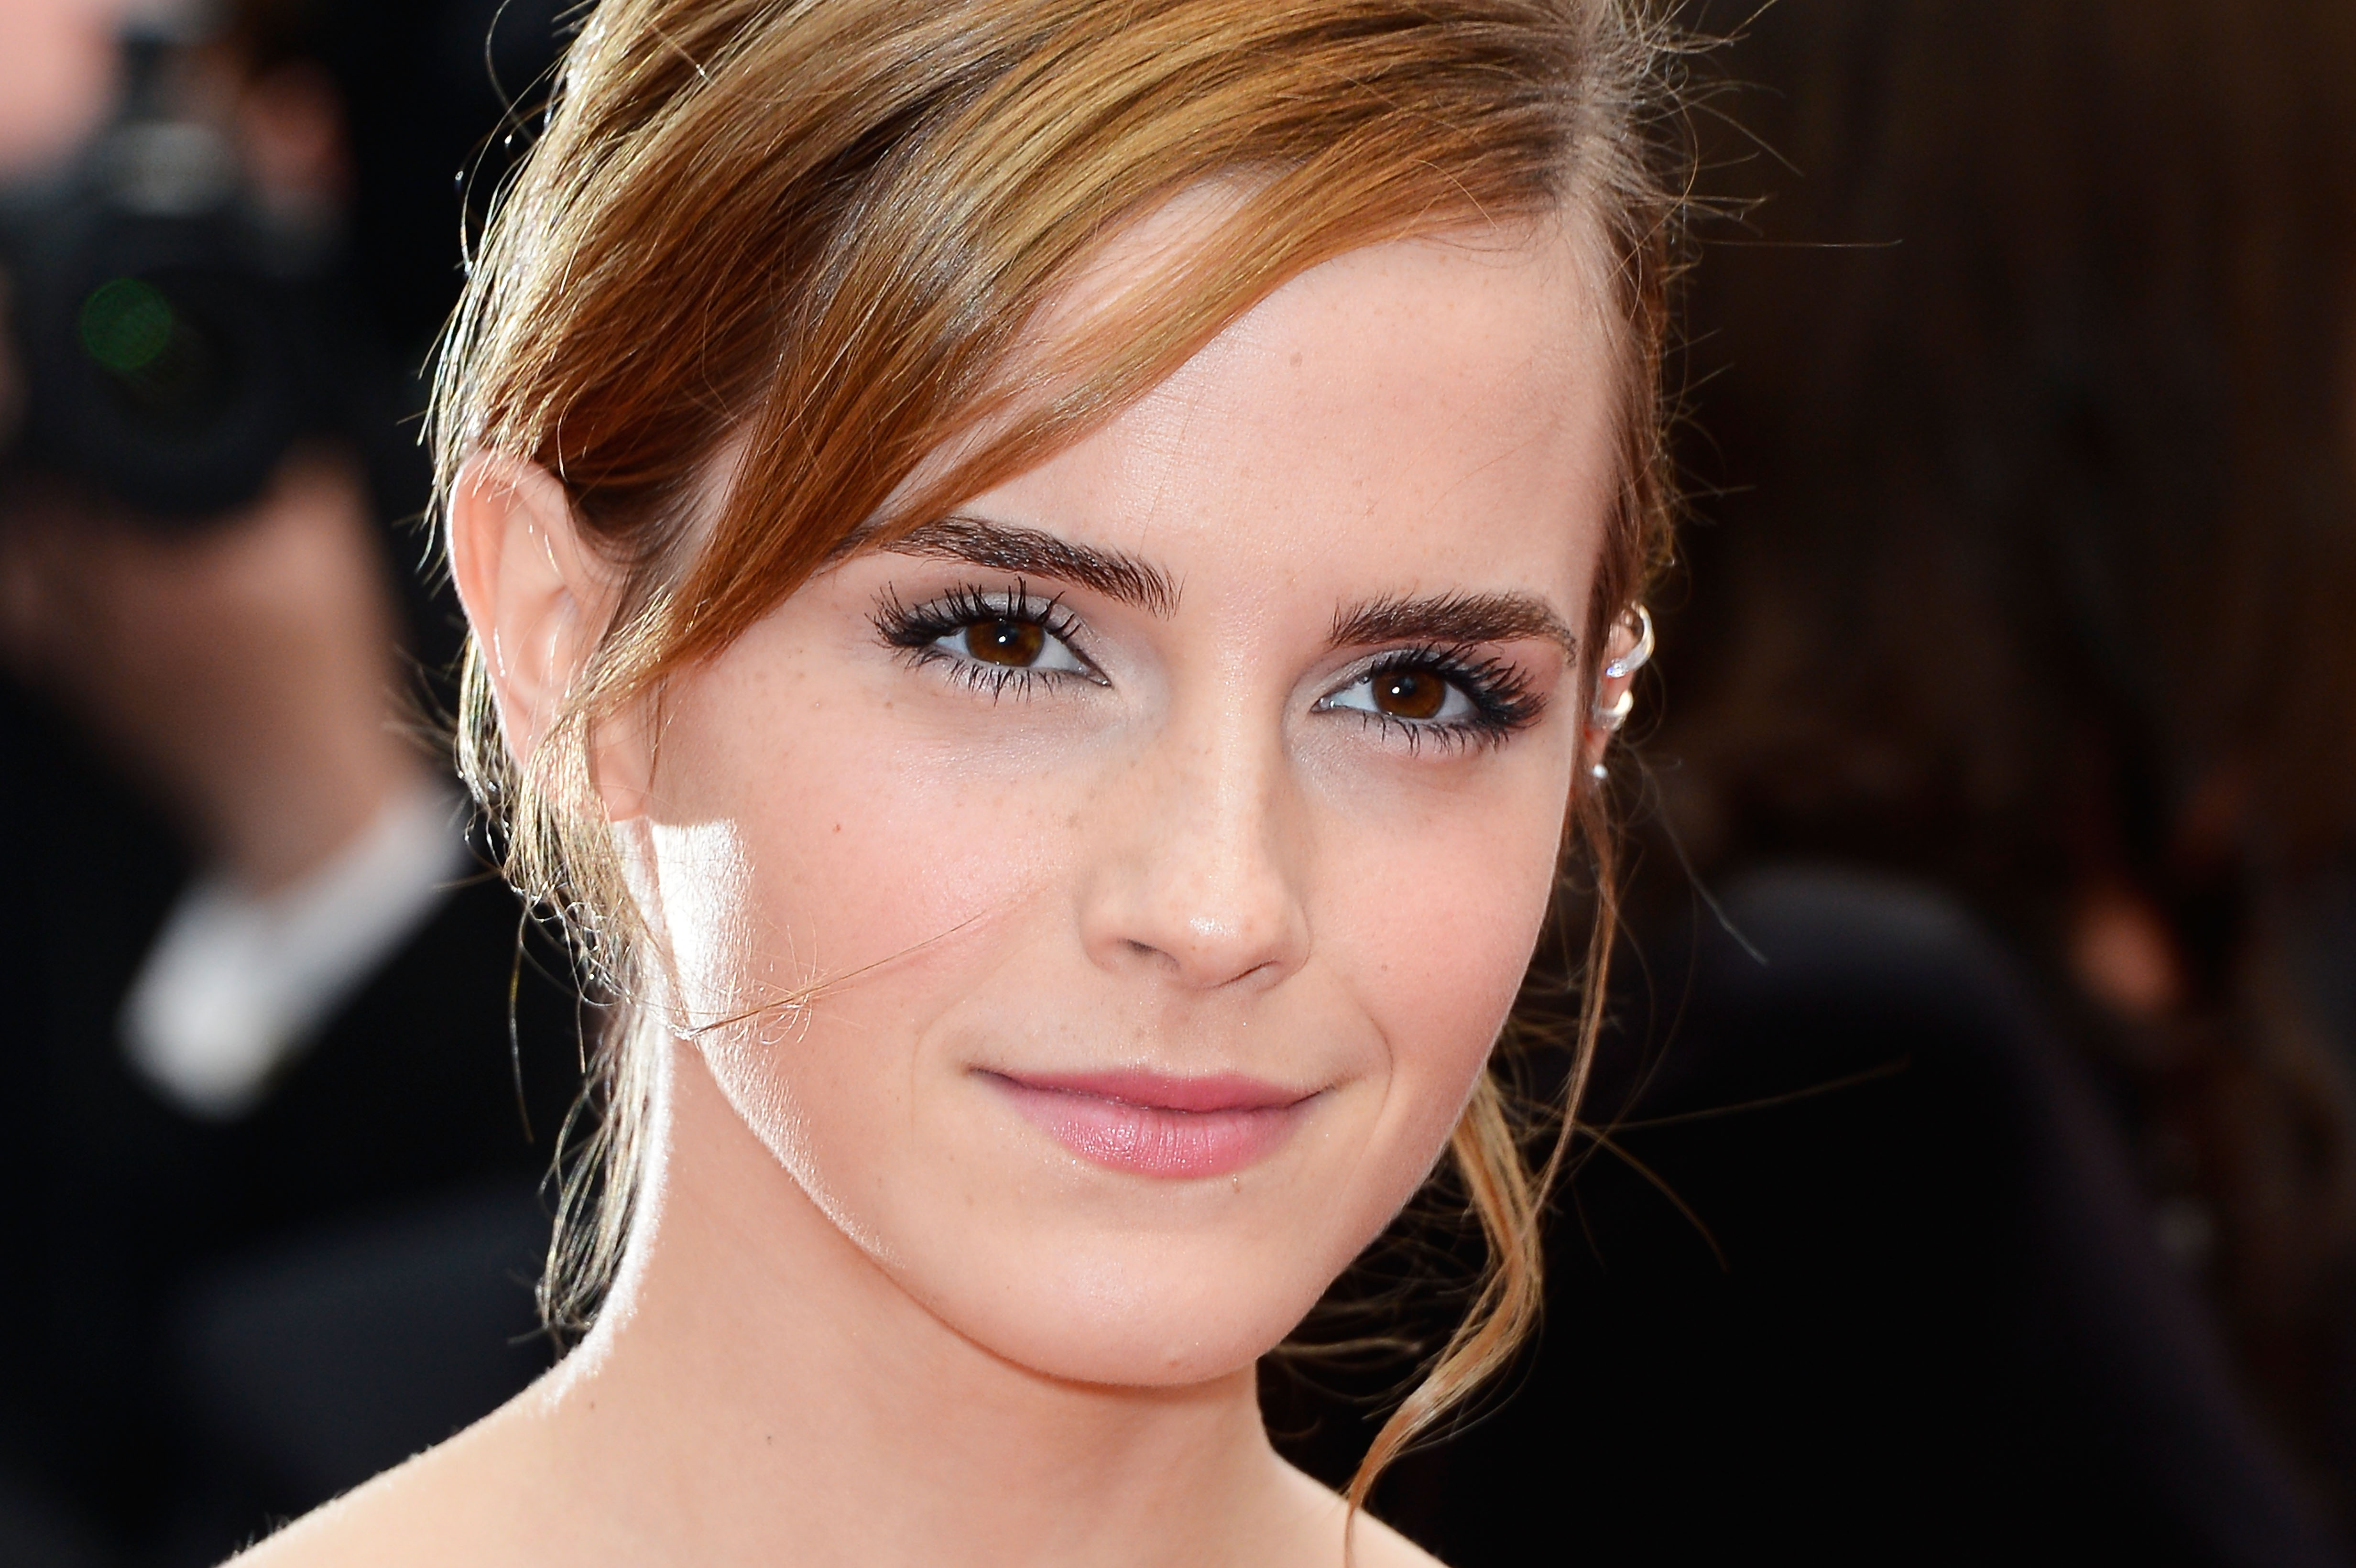 Emma Watson Executes Slick Legal Spell Over Leak Of Private Pictures Above The Law